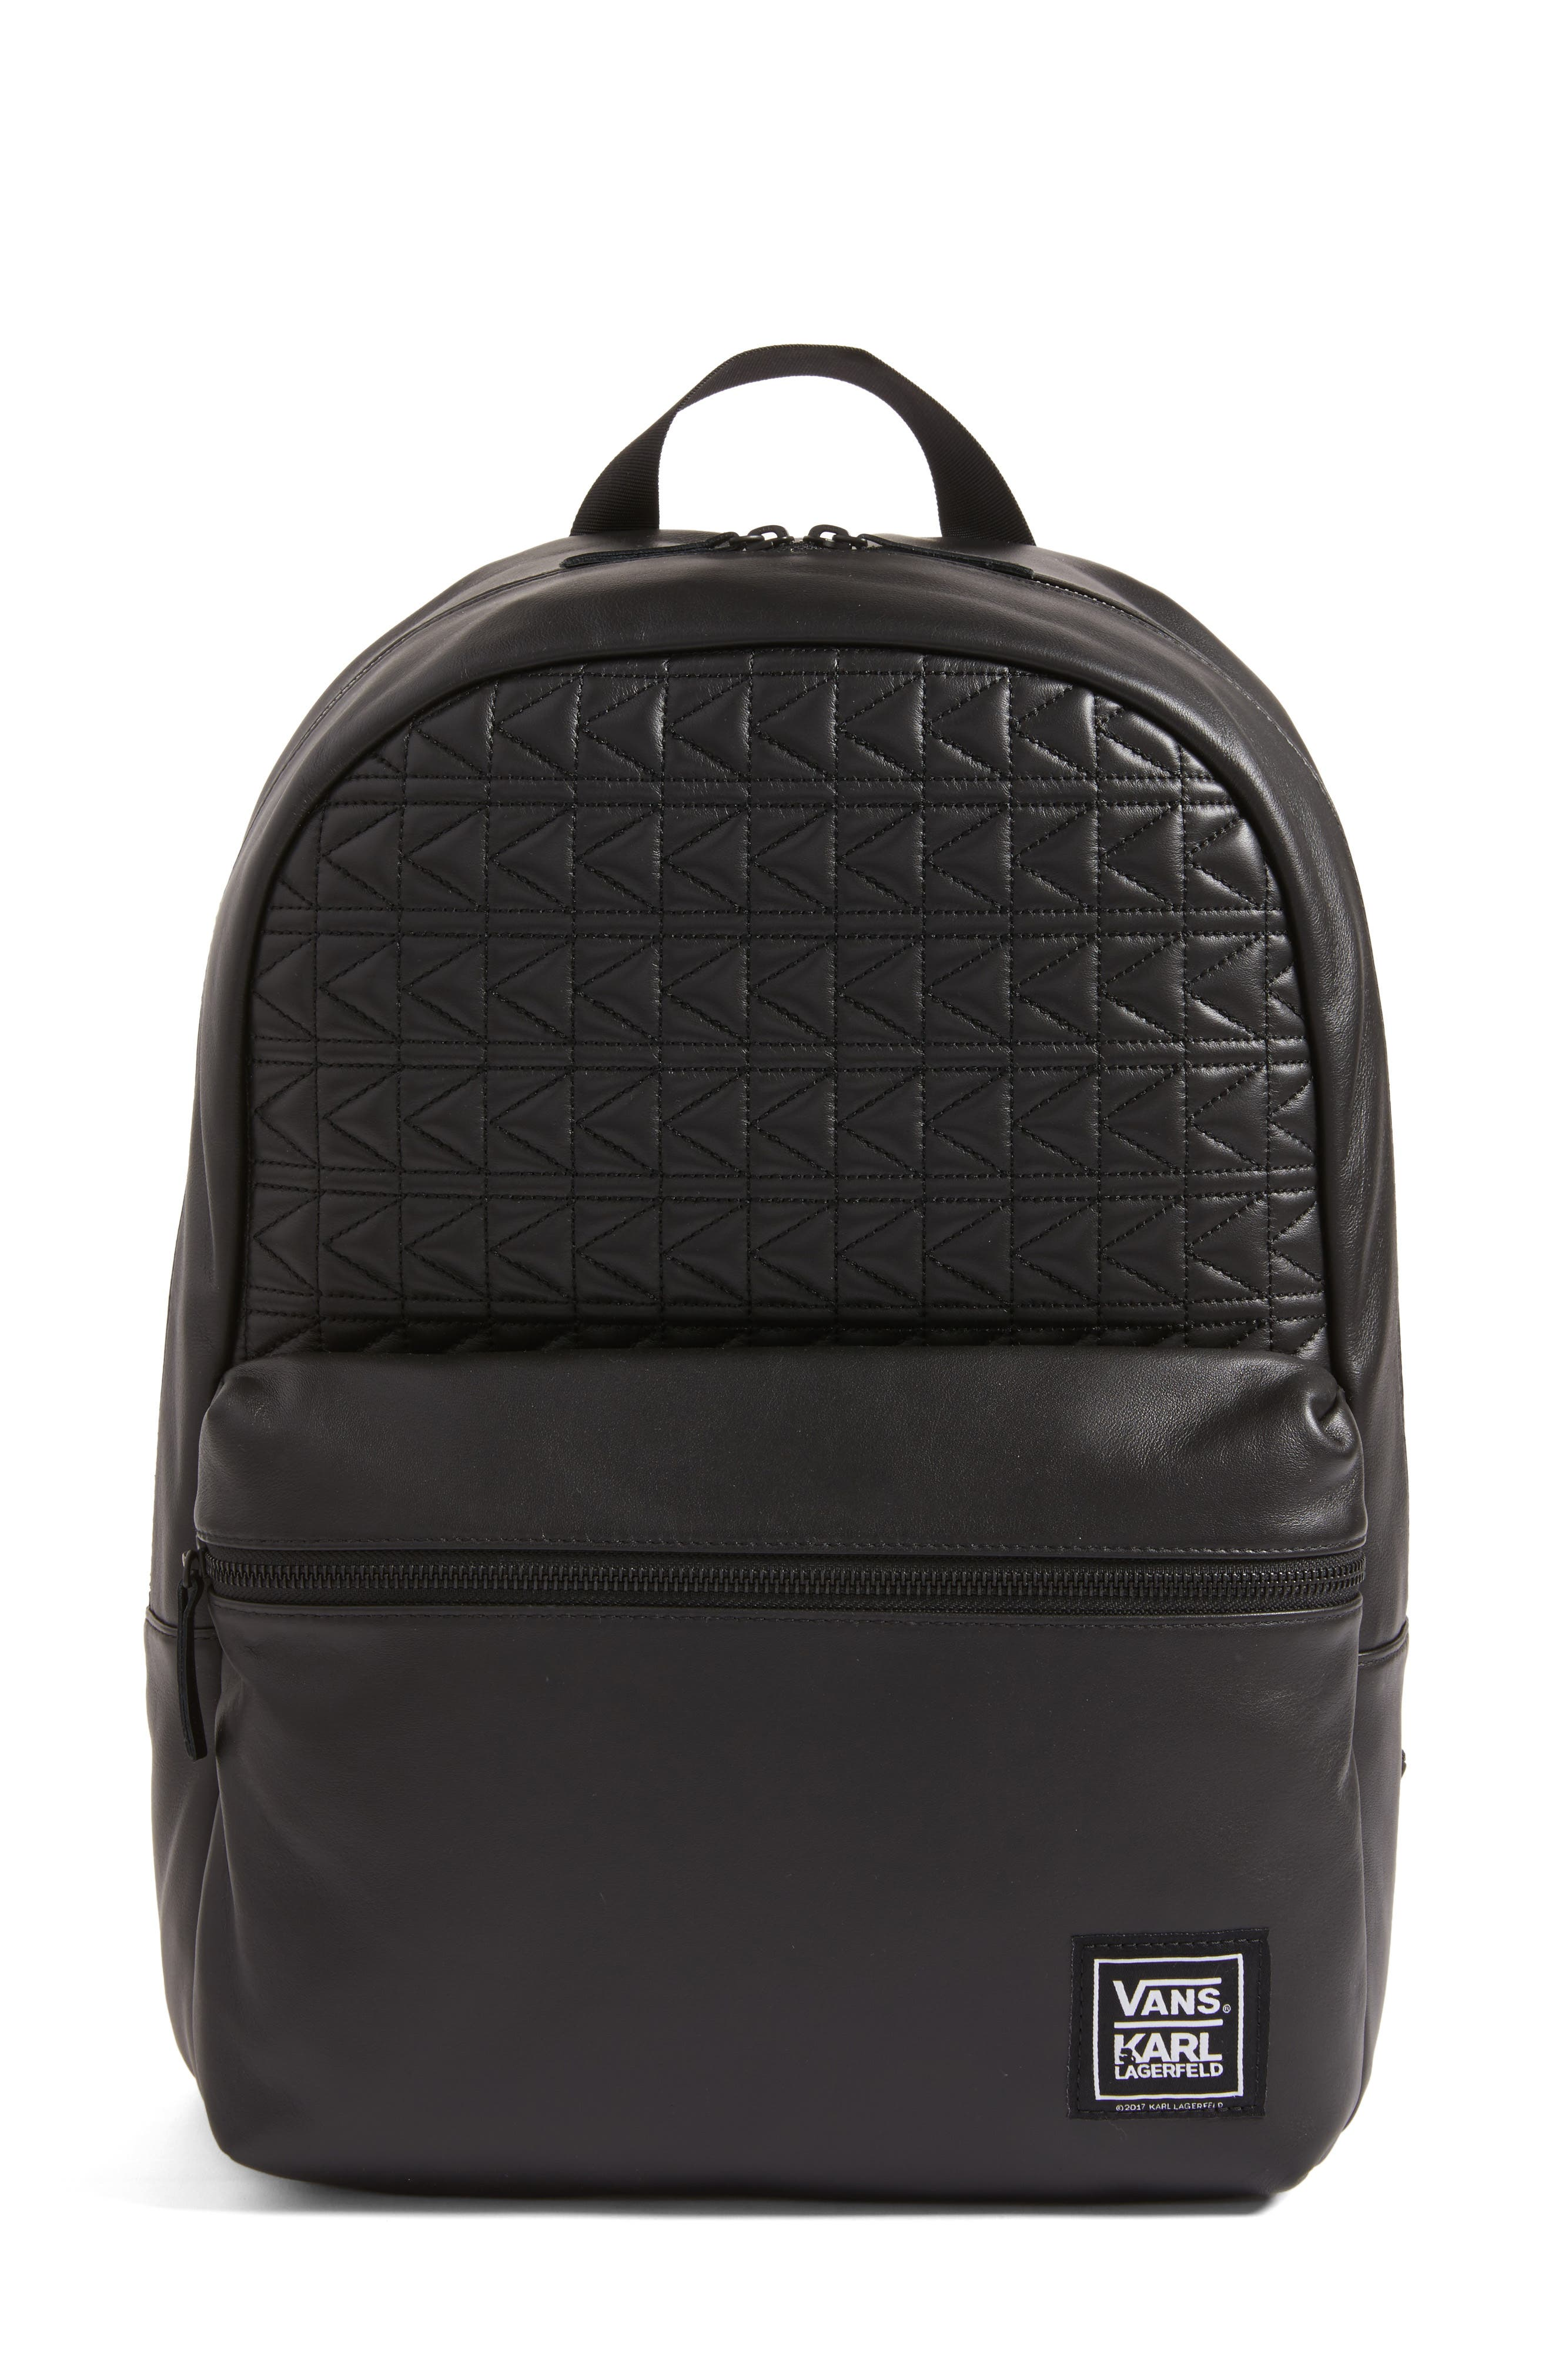 Alternate Image 1 Selected - Vans x KARL LAGERFELD Quilted Leather Backpack